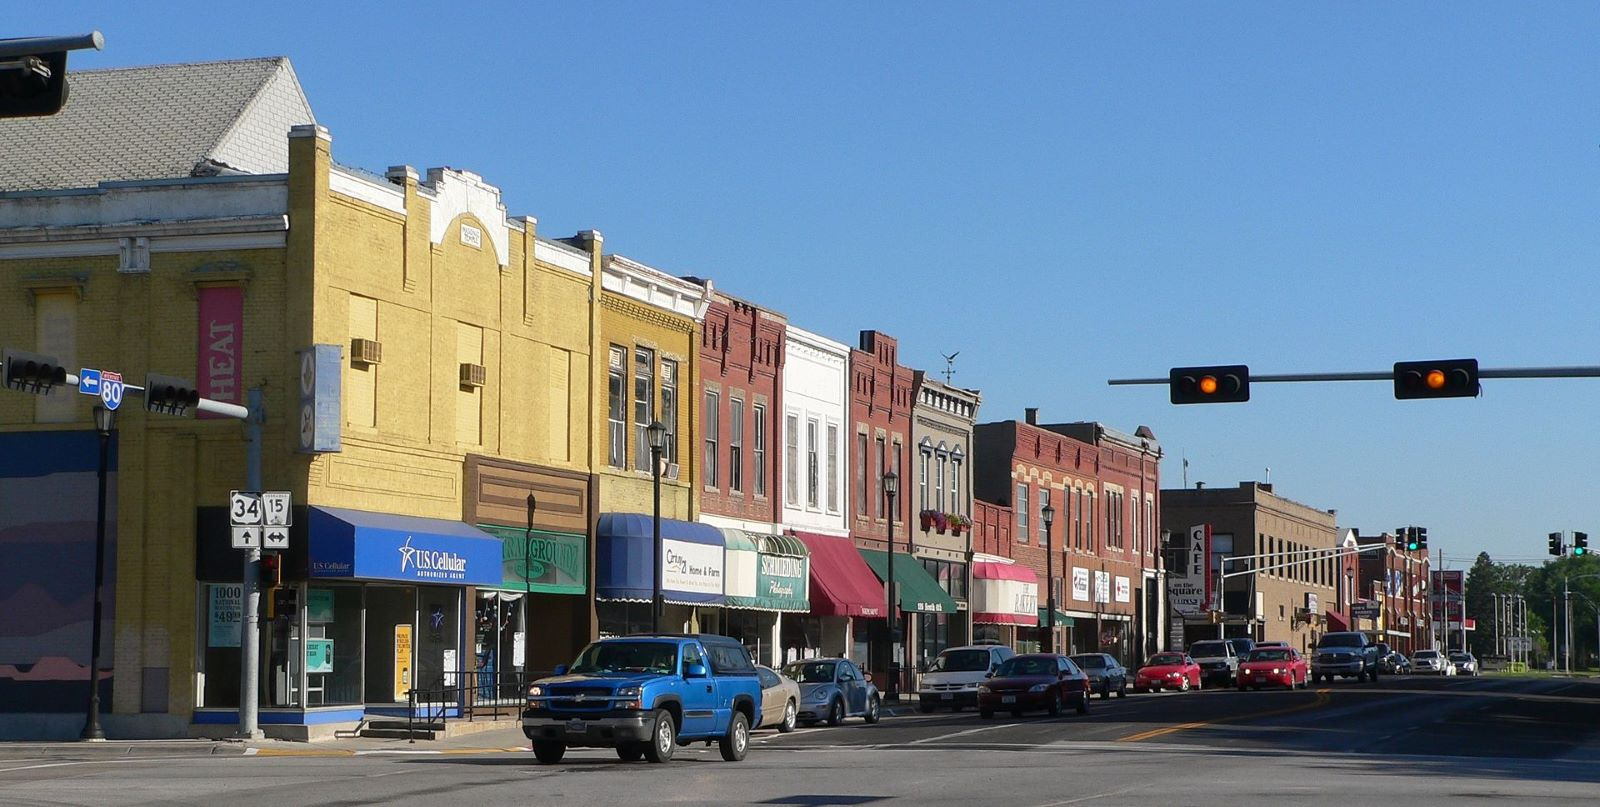 Down Seward main street intersection on interstate 80.  Shops lining the road with colorful awnings